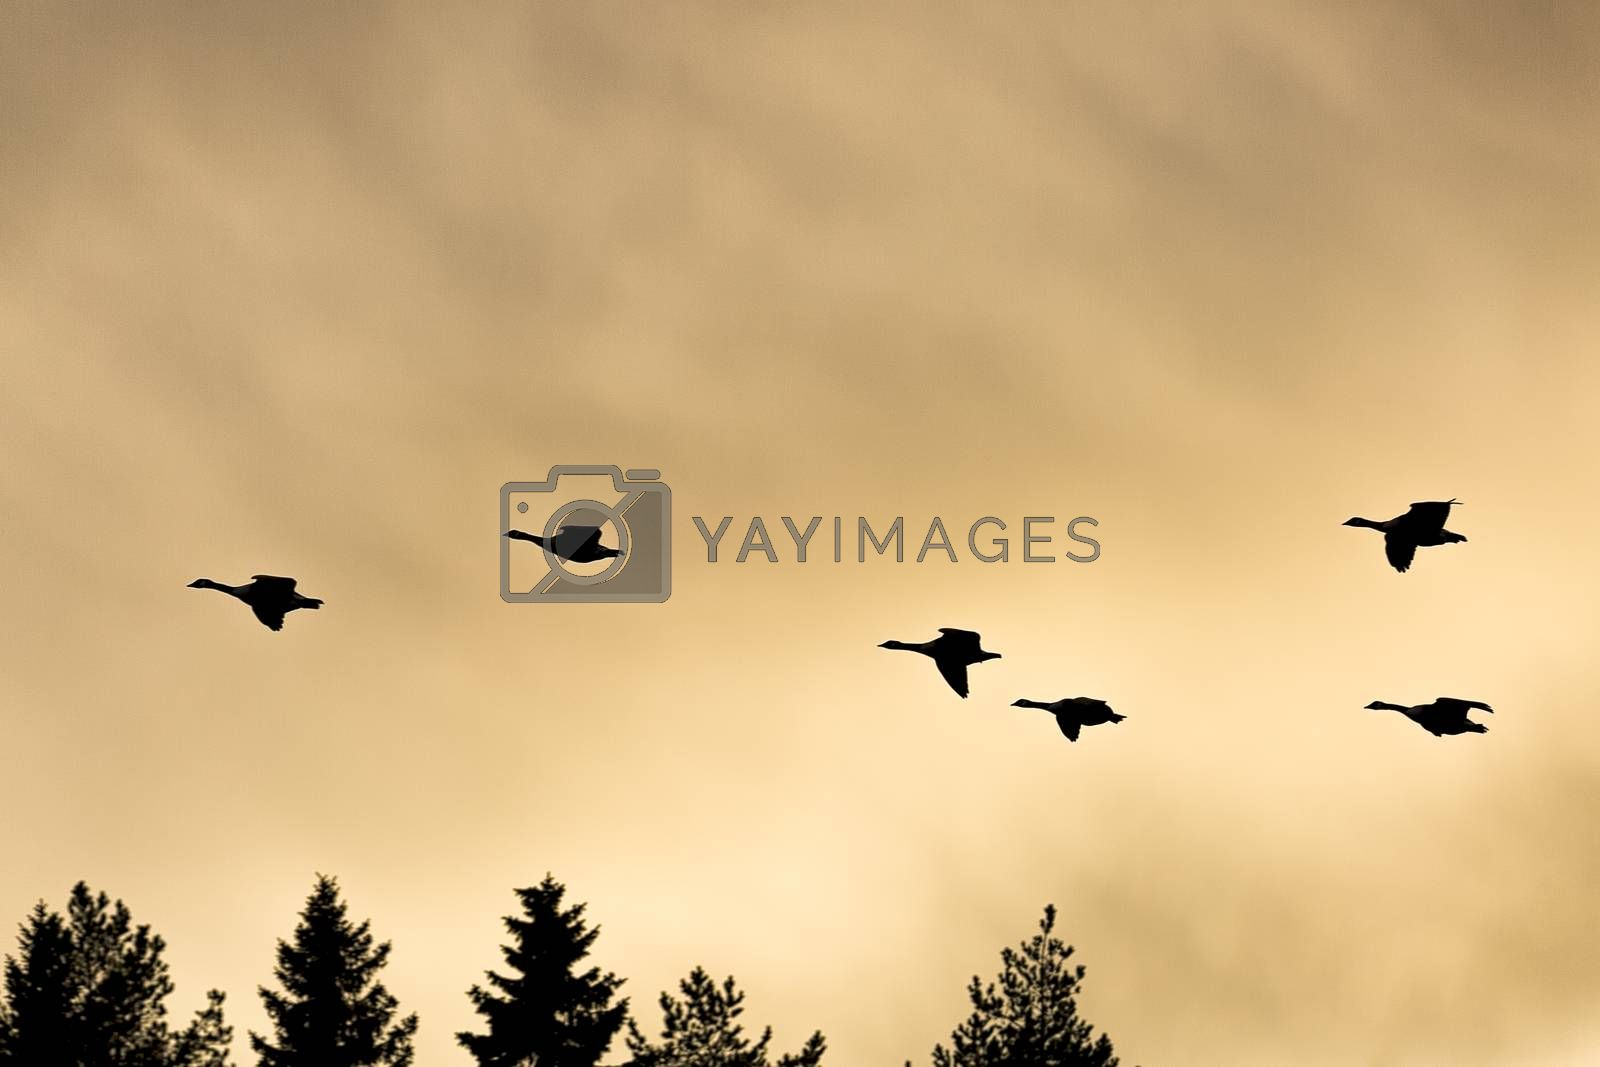 Canada Geese Flying over tree-tops with a cloudy sky.